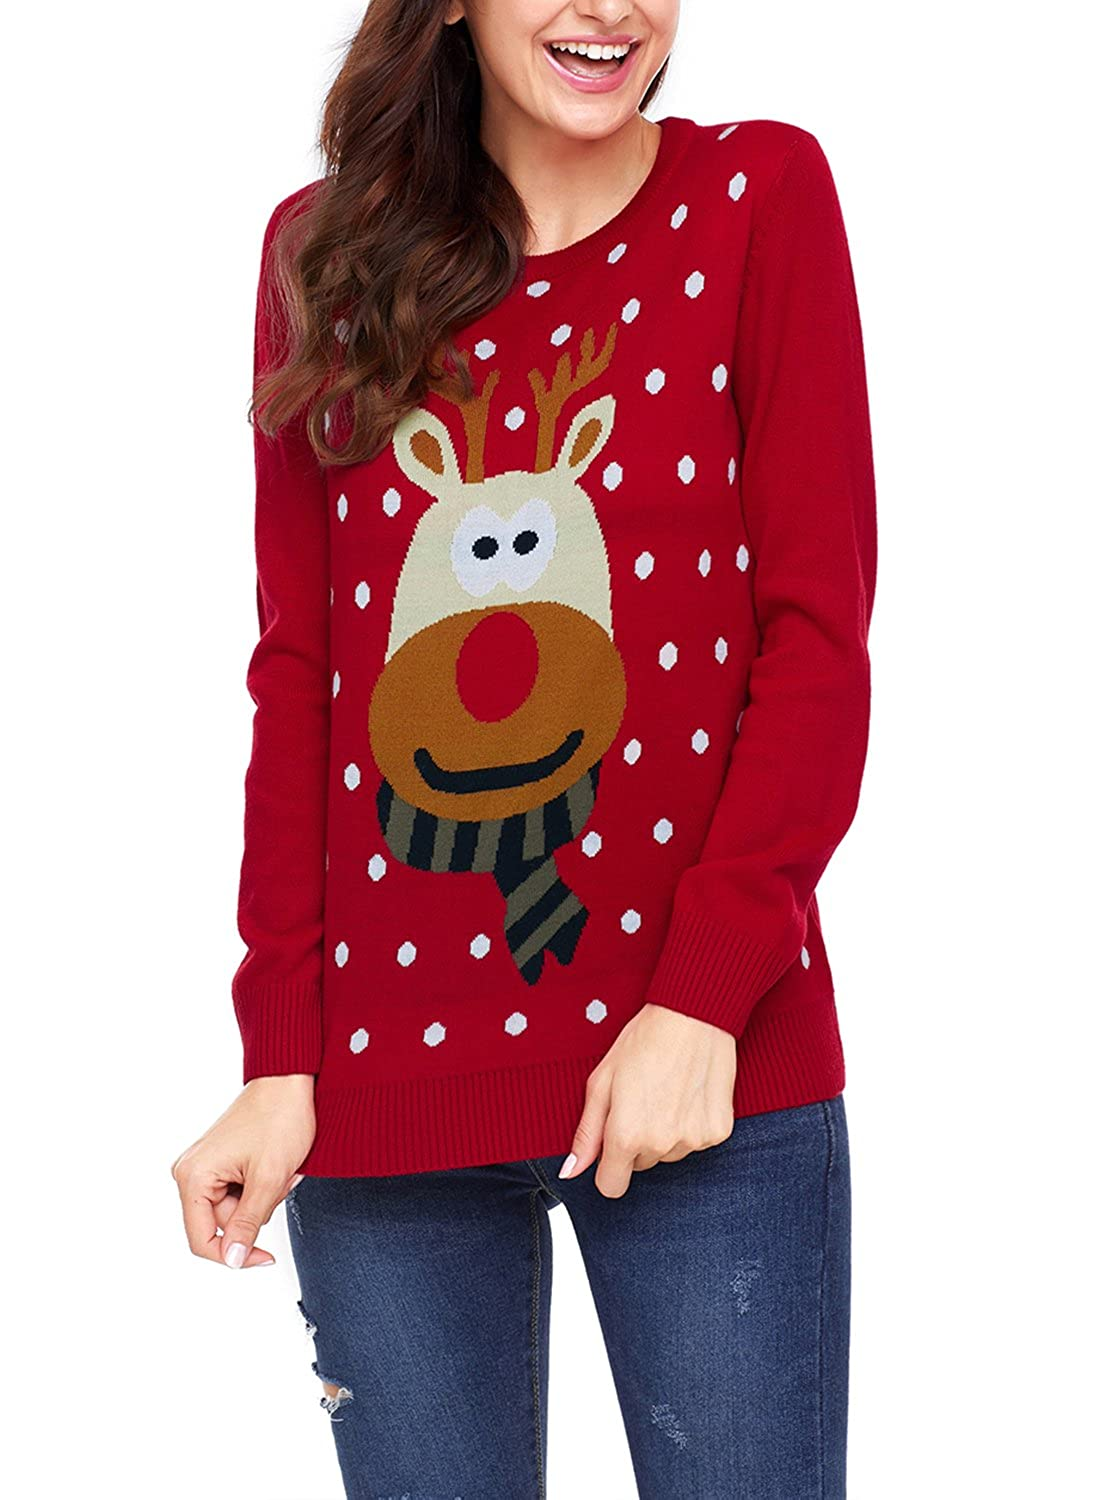 Sidefeel Women Knited Holiday Pullover Christmas Cute Reindeer Sweater HX27695